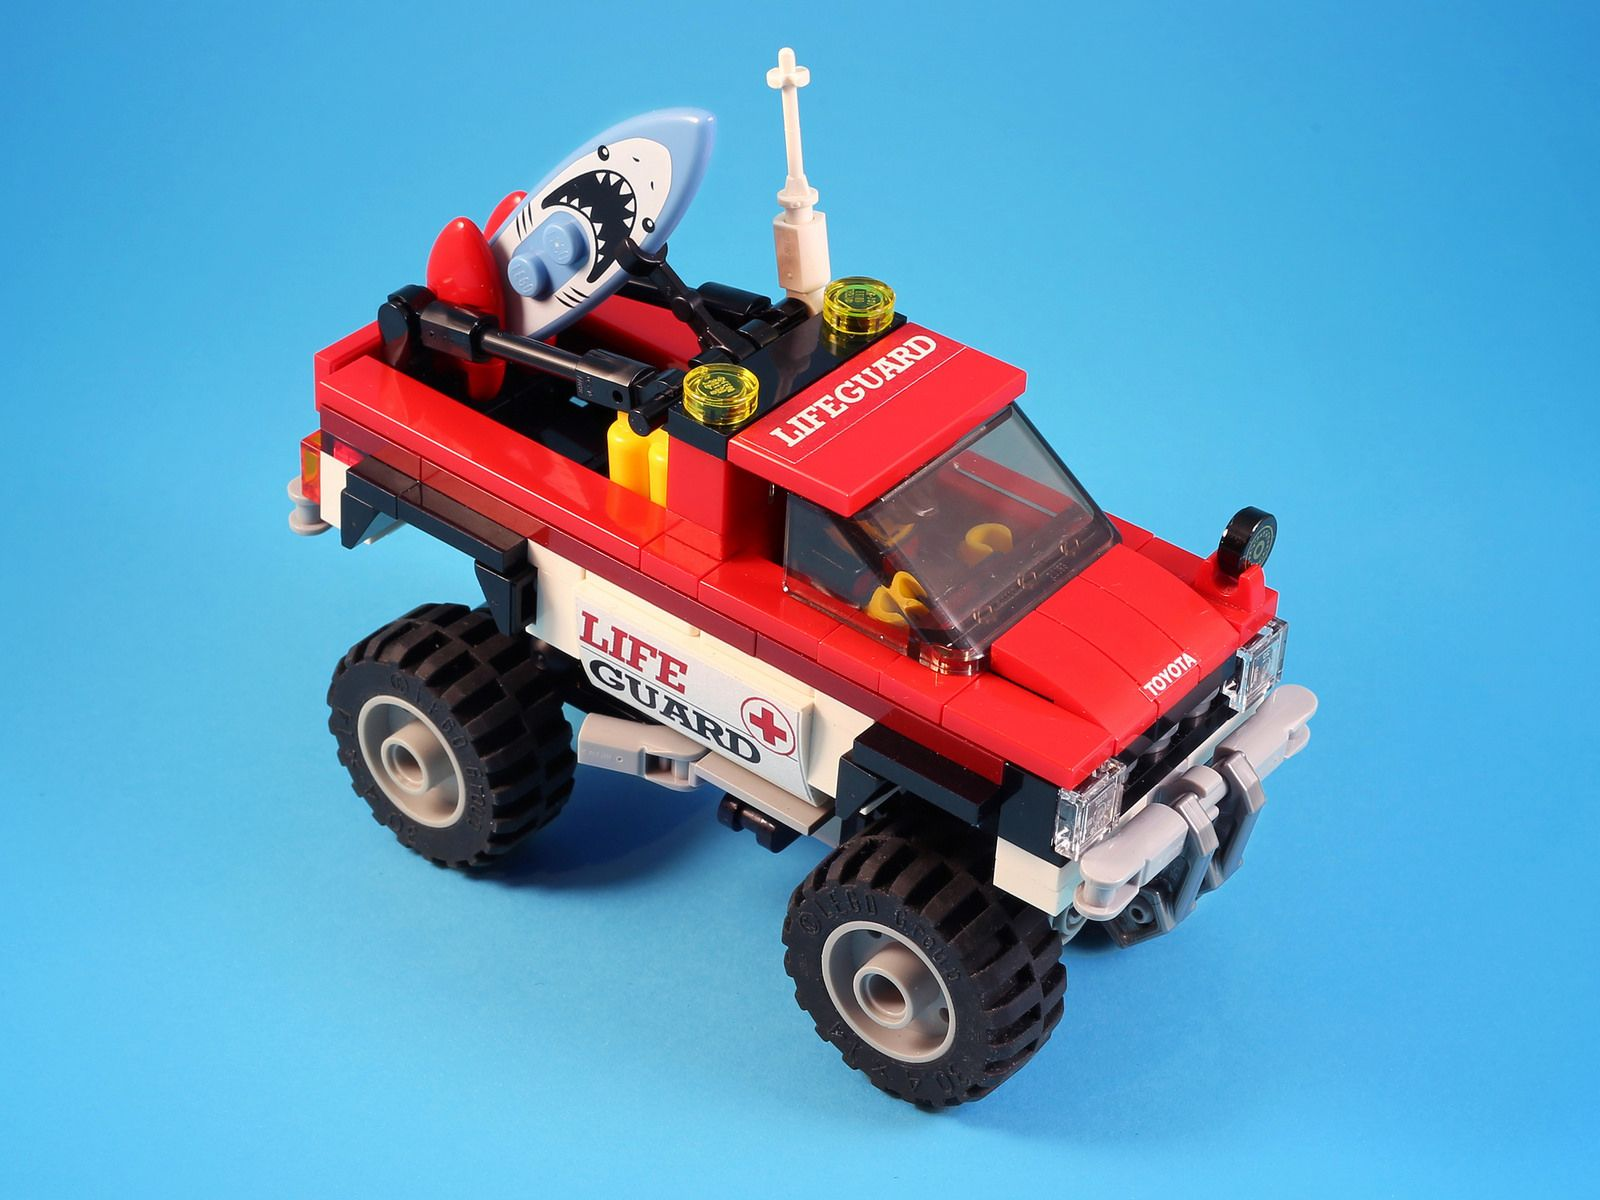 Lifeguard Car Lifeguard Lego And Legos